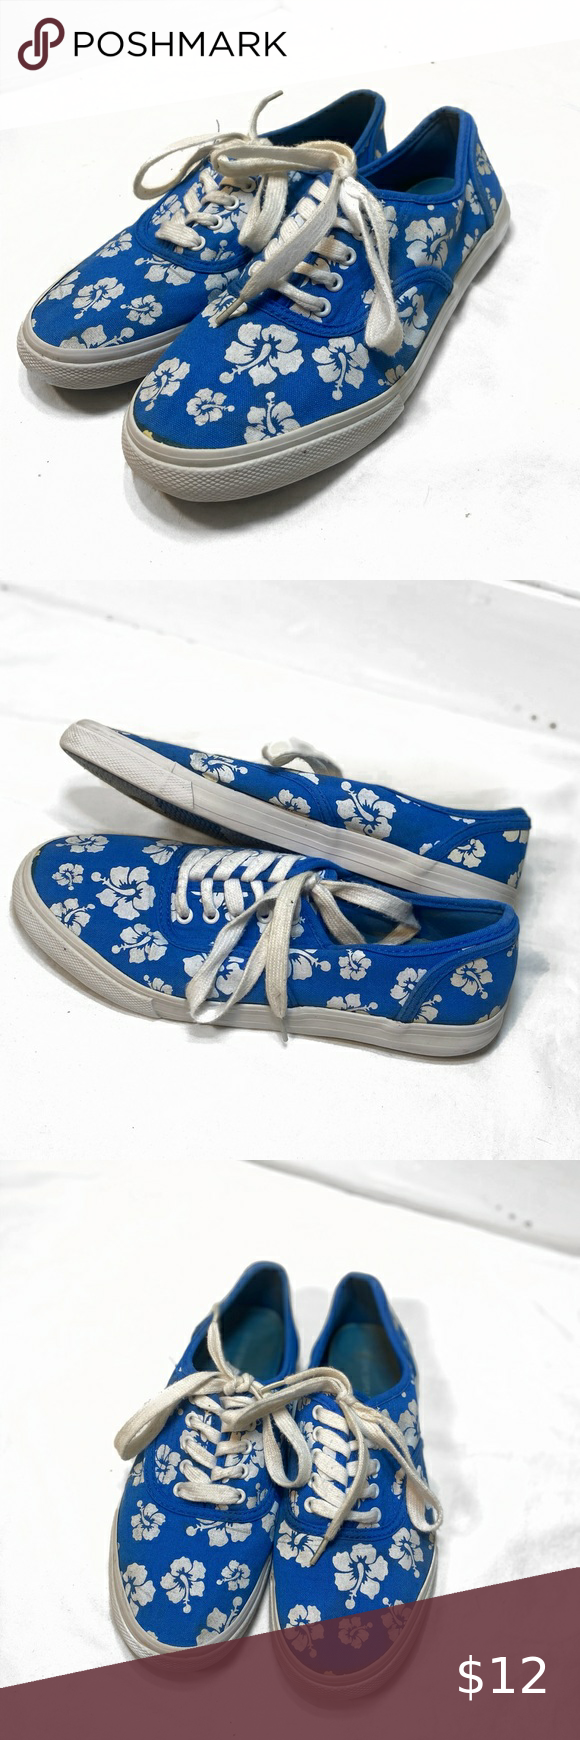 MOSSIMO blue Hawaiian flower sneakers luau floral MOSSIMO  Size 8  Cloth fabric …